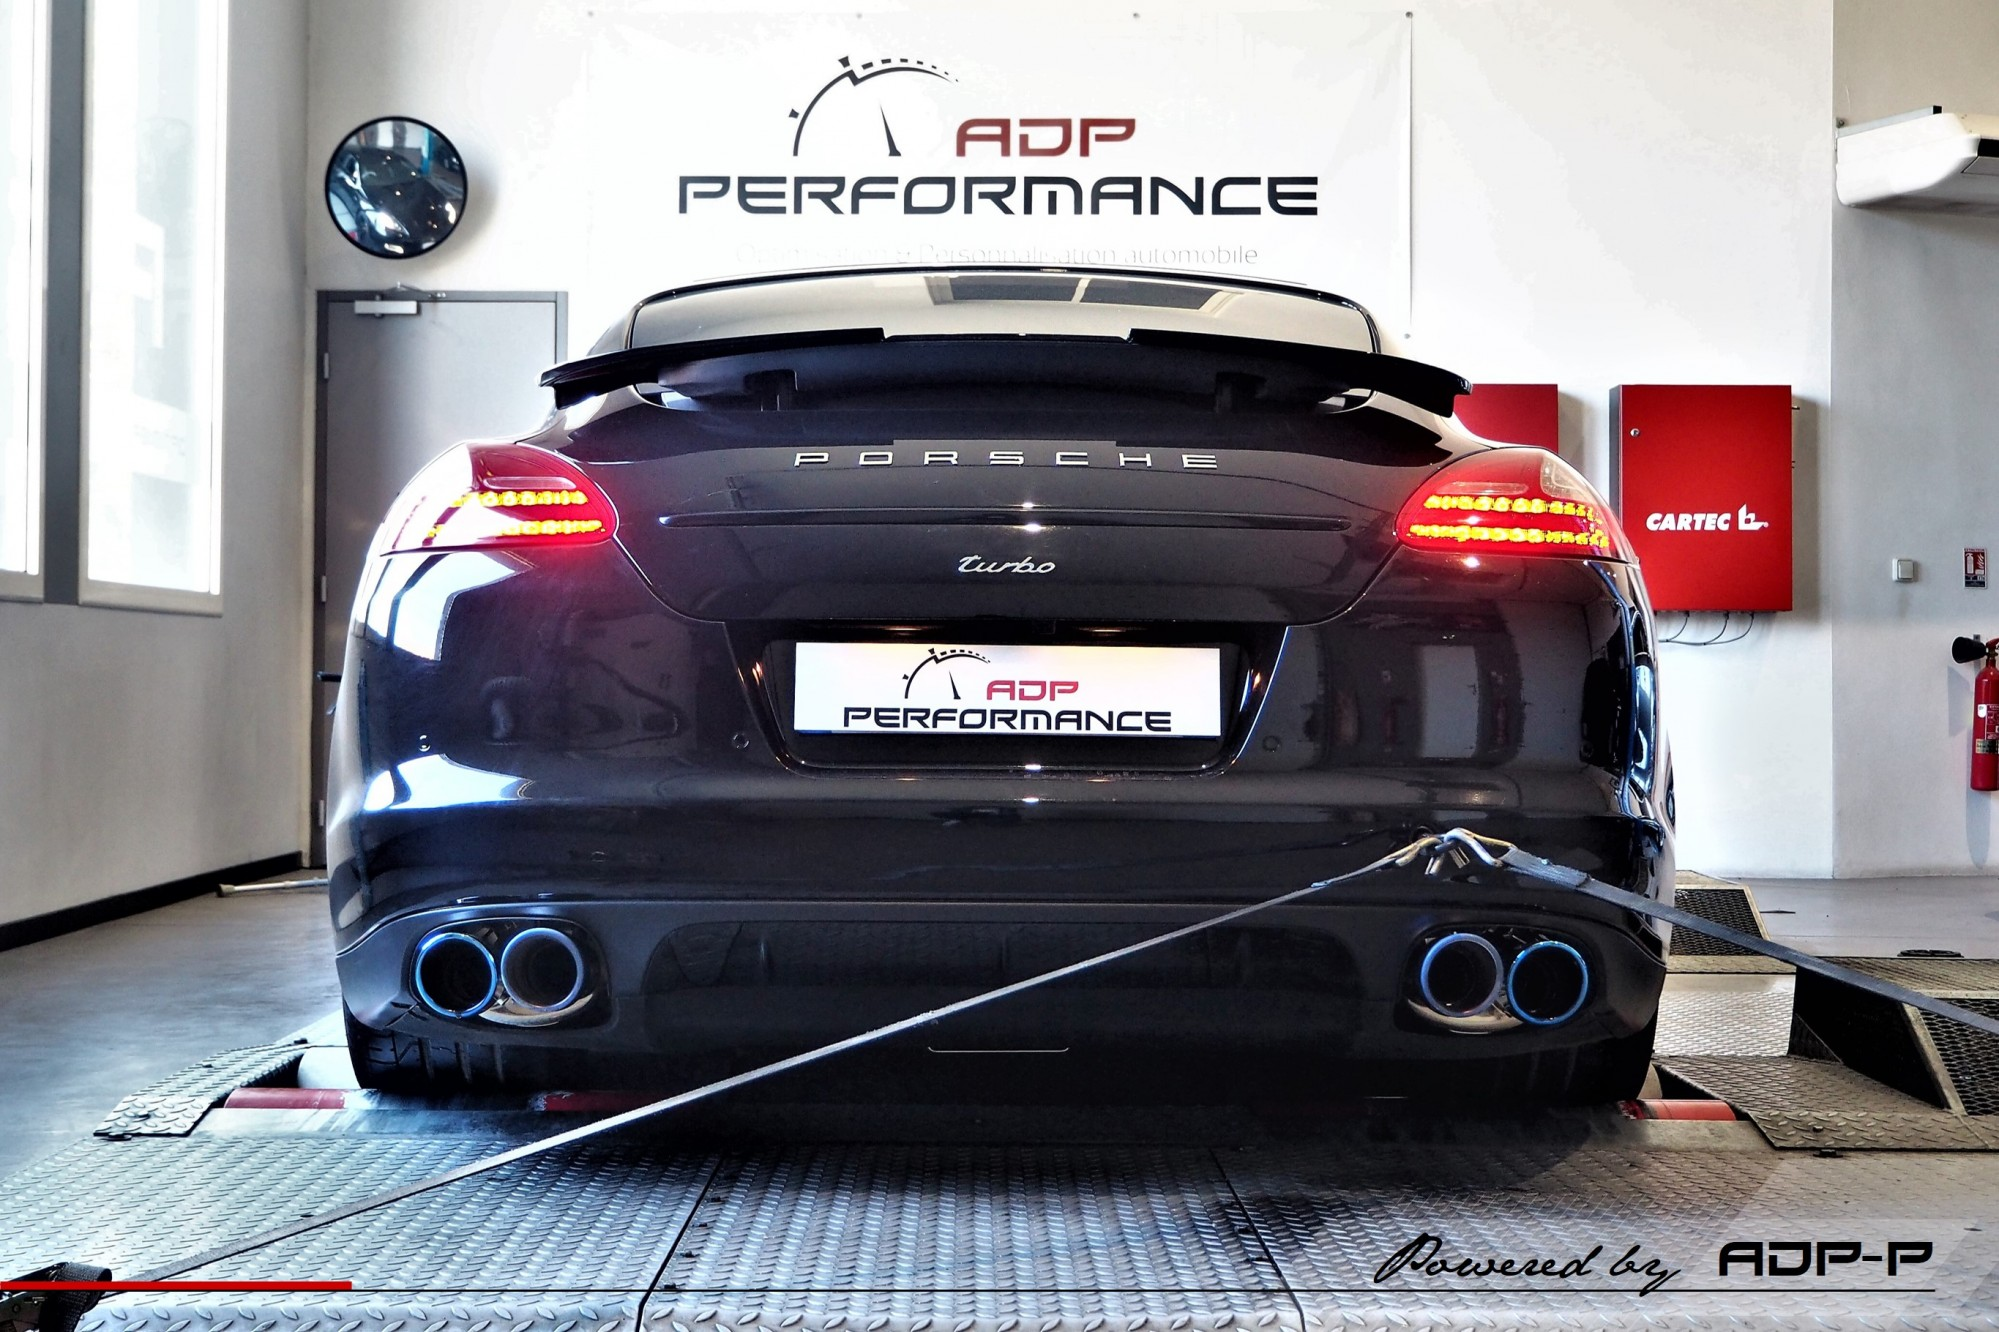 RaceChip Ultimate Nimes - Porsche Panamera Turbo - ADP Performance